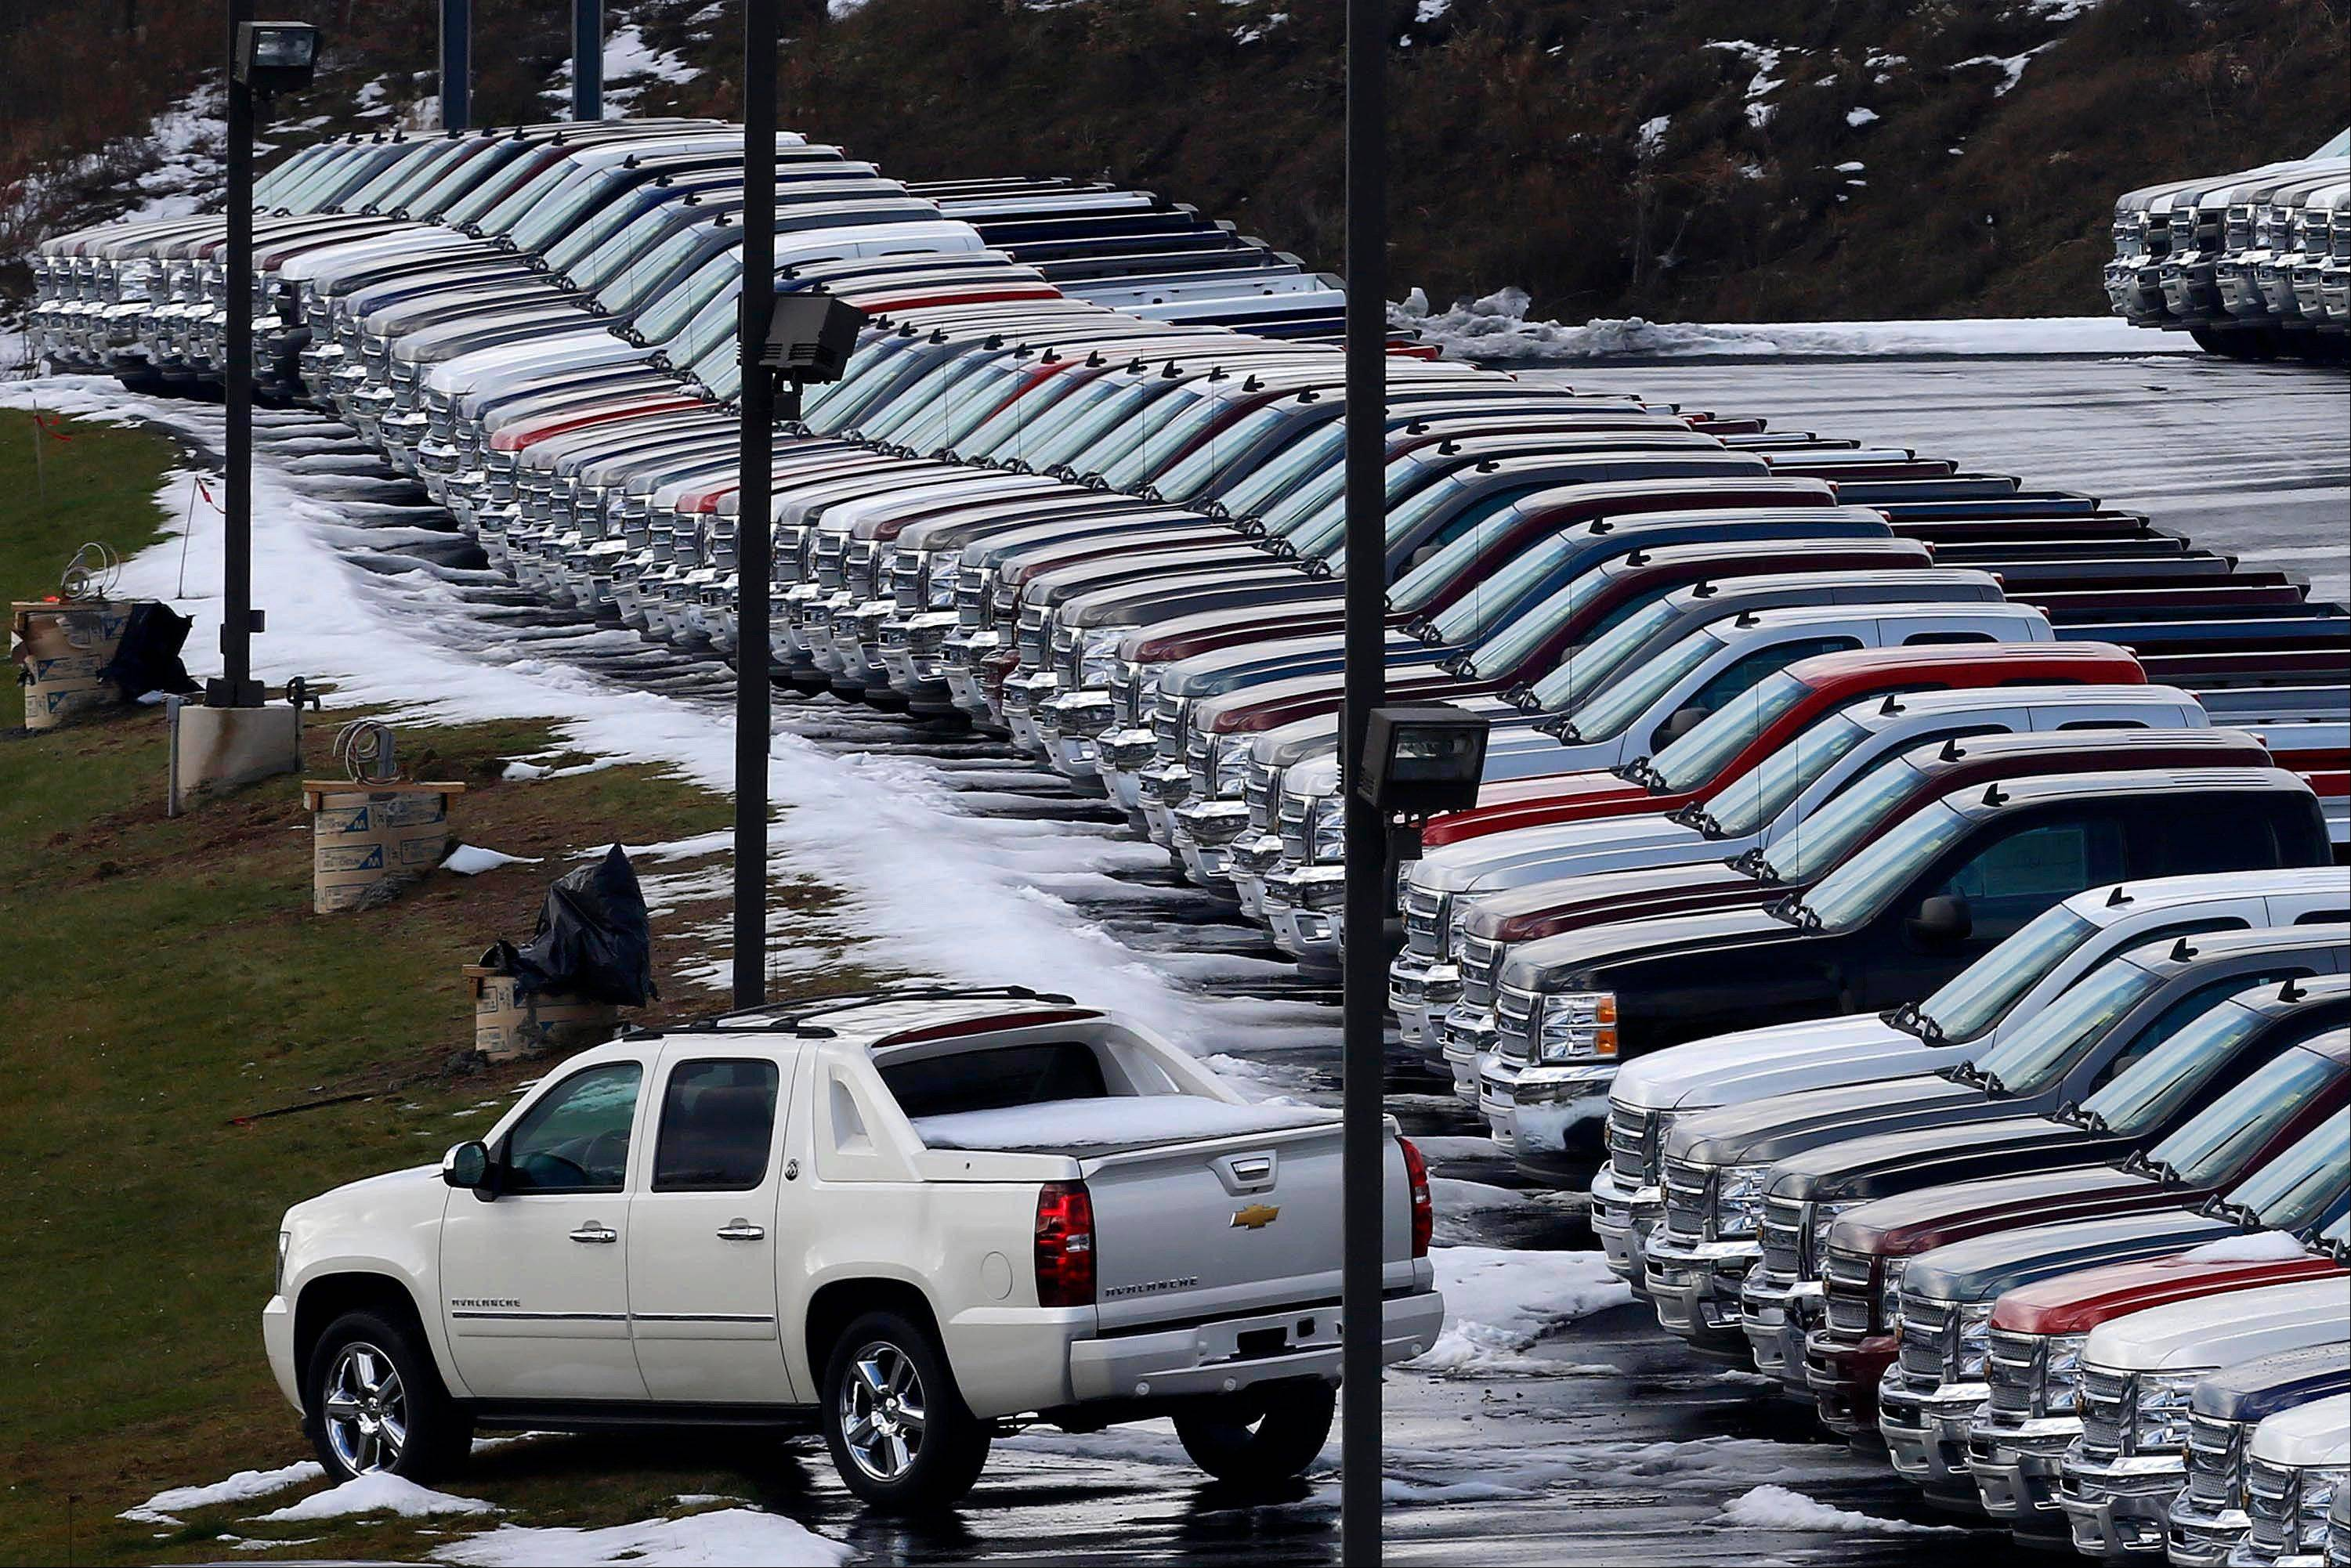 Americans are keeping their cars and trucks longer than ever, and even with new car sales increasing, the average age will continue to rise, an industry research firm says.